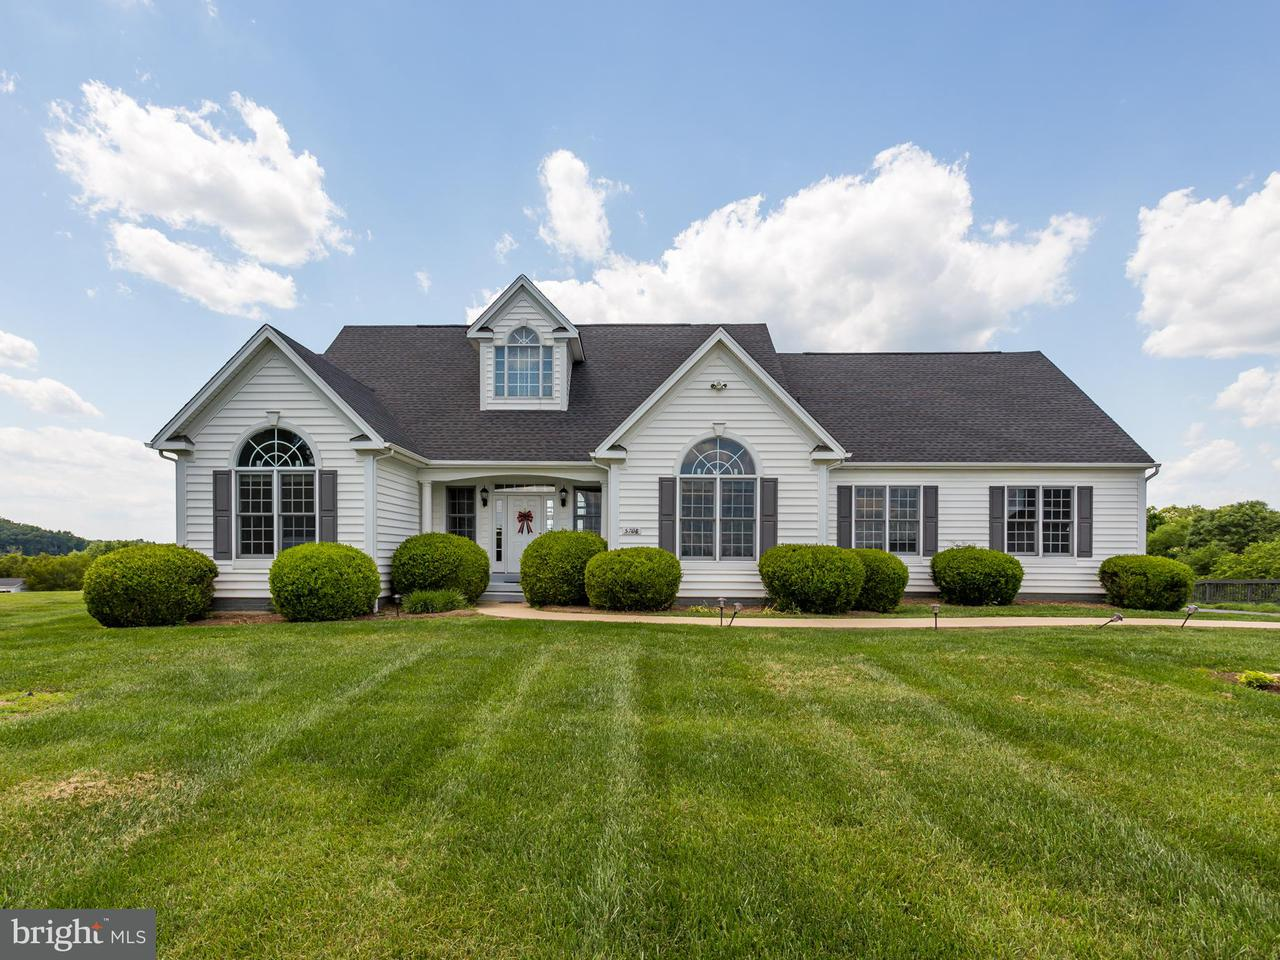 Single Family Home for Sale at 5708 Crescent Point Drive 5708 Crescent Point Drive Orange, Virginia 22960 United States